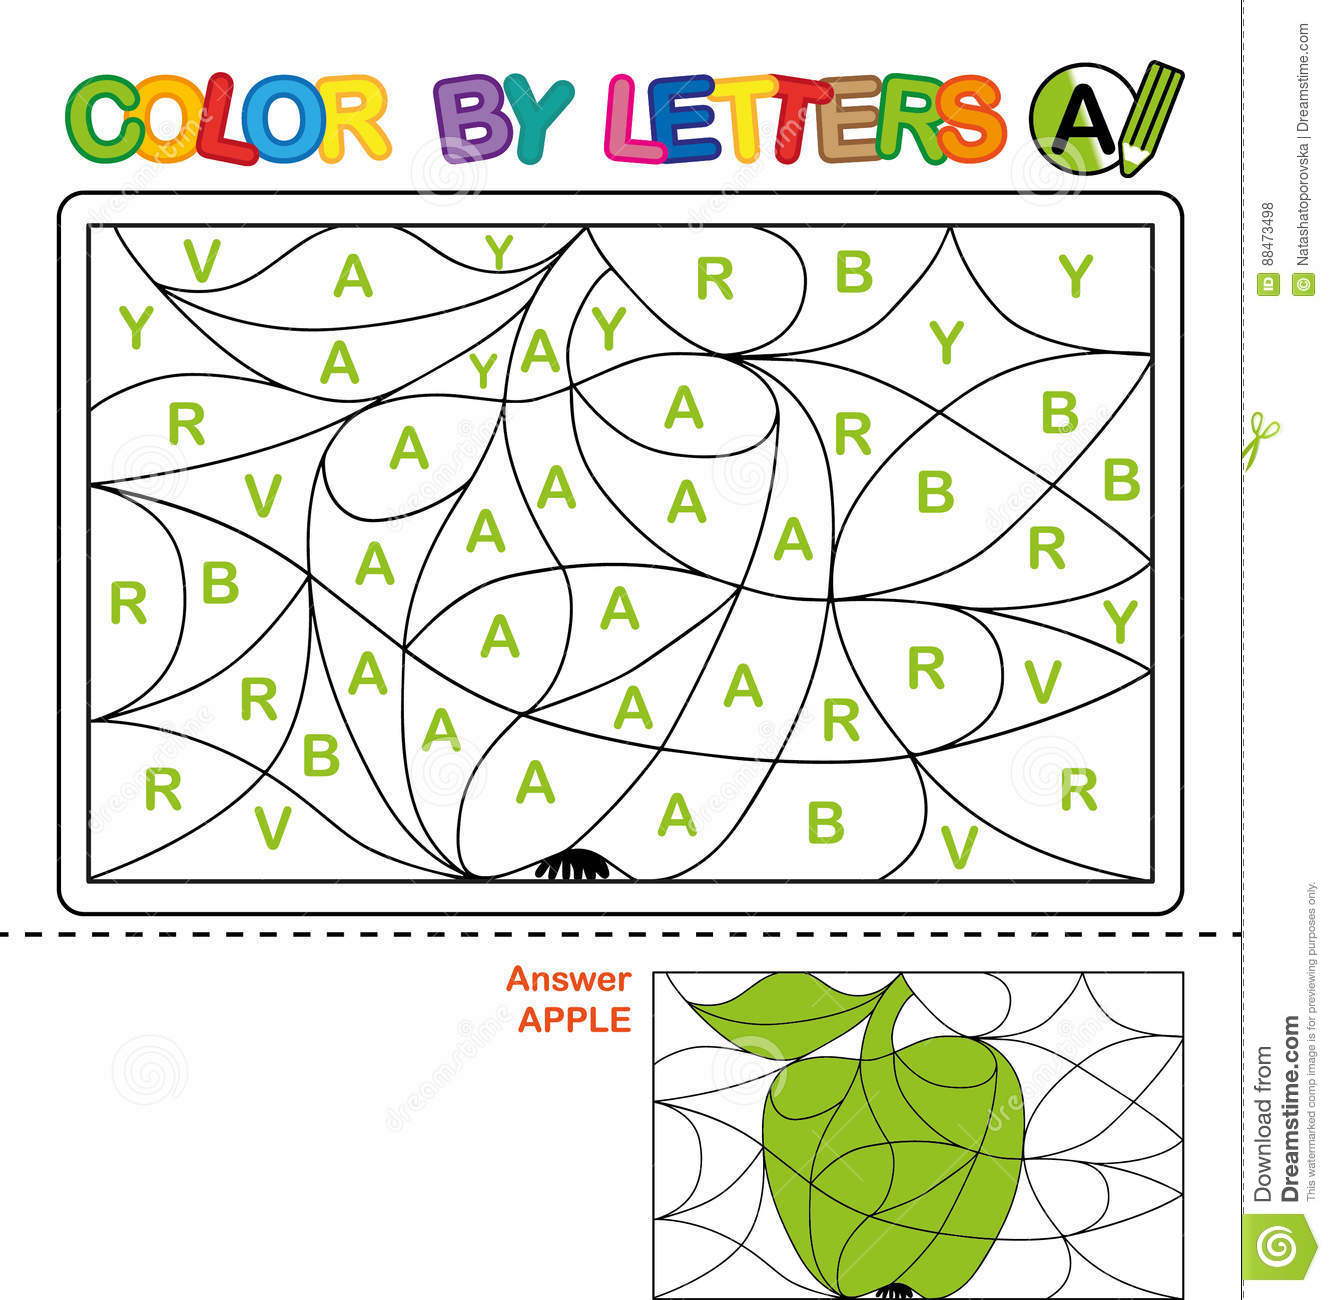 Color By Letter Puzzle For Children Apple Stock Vector